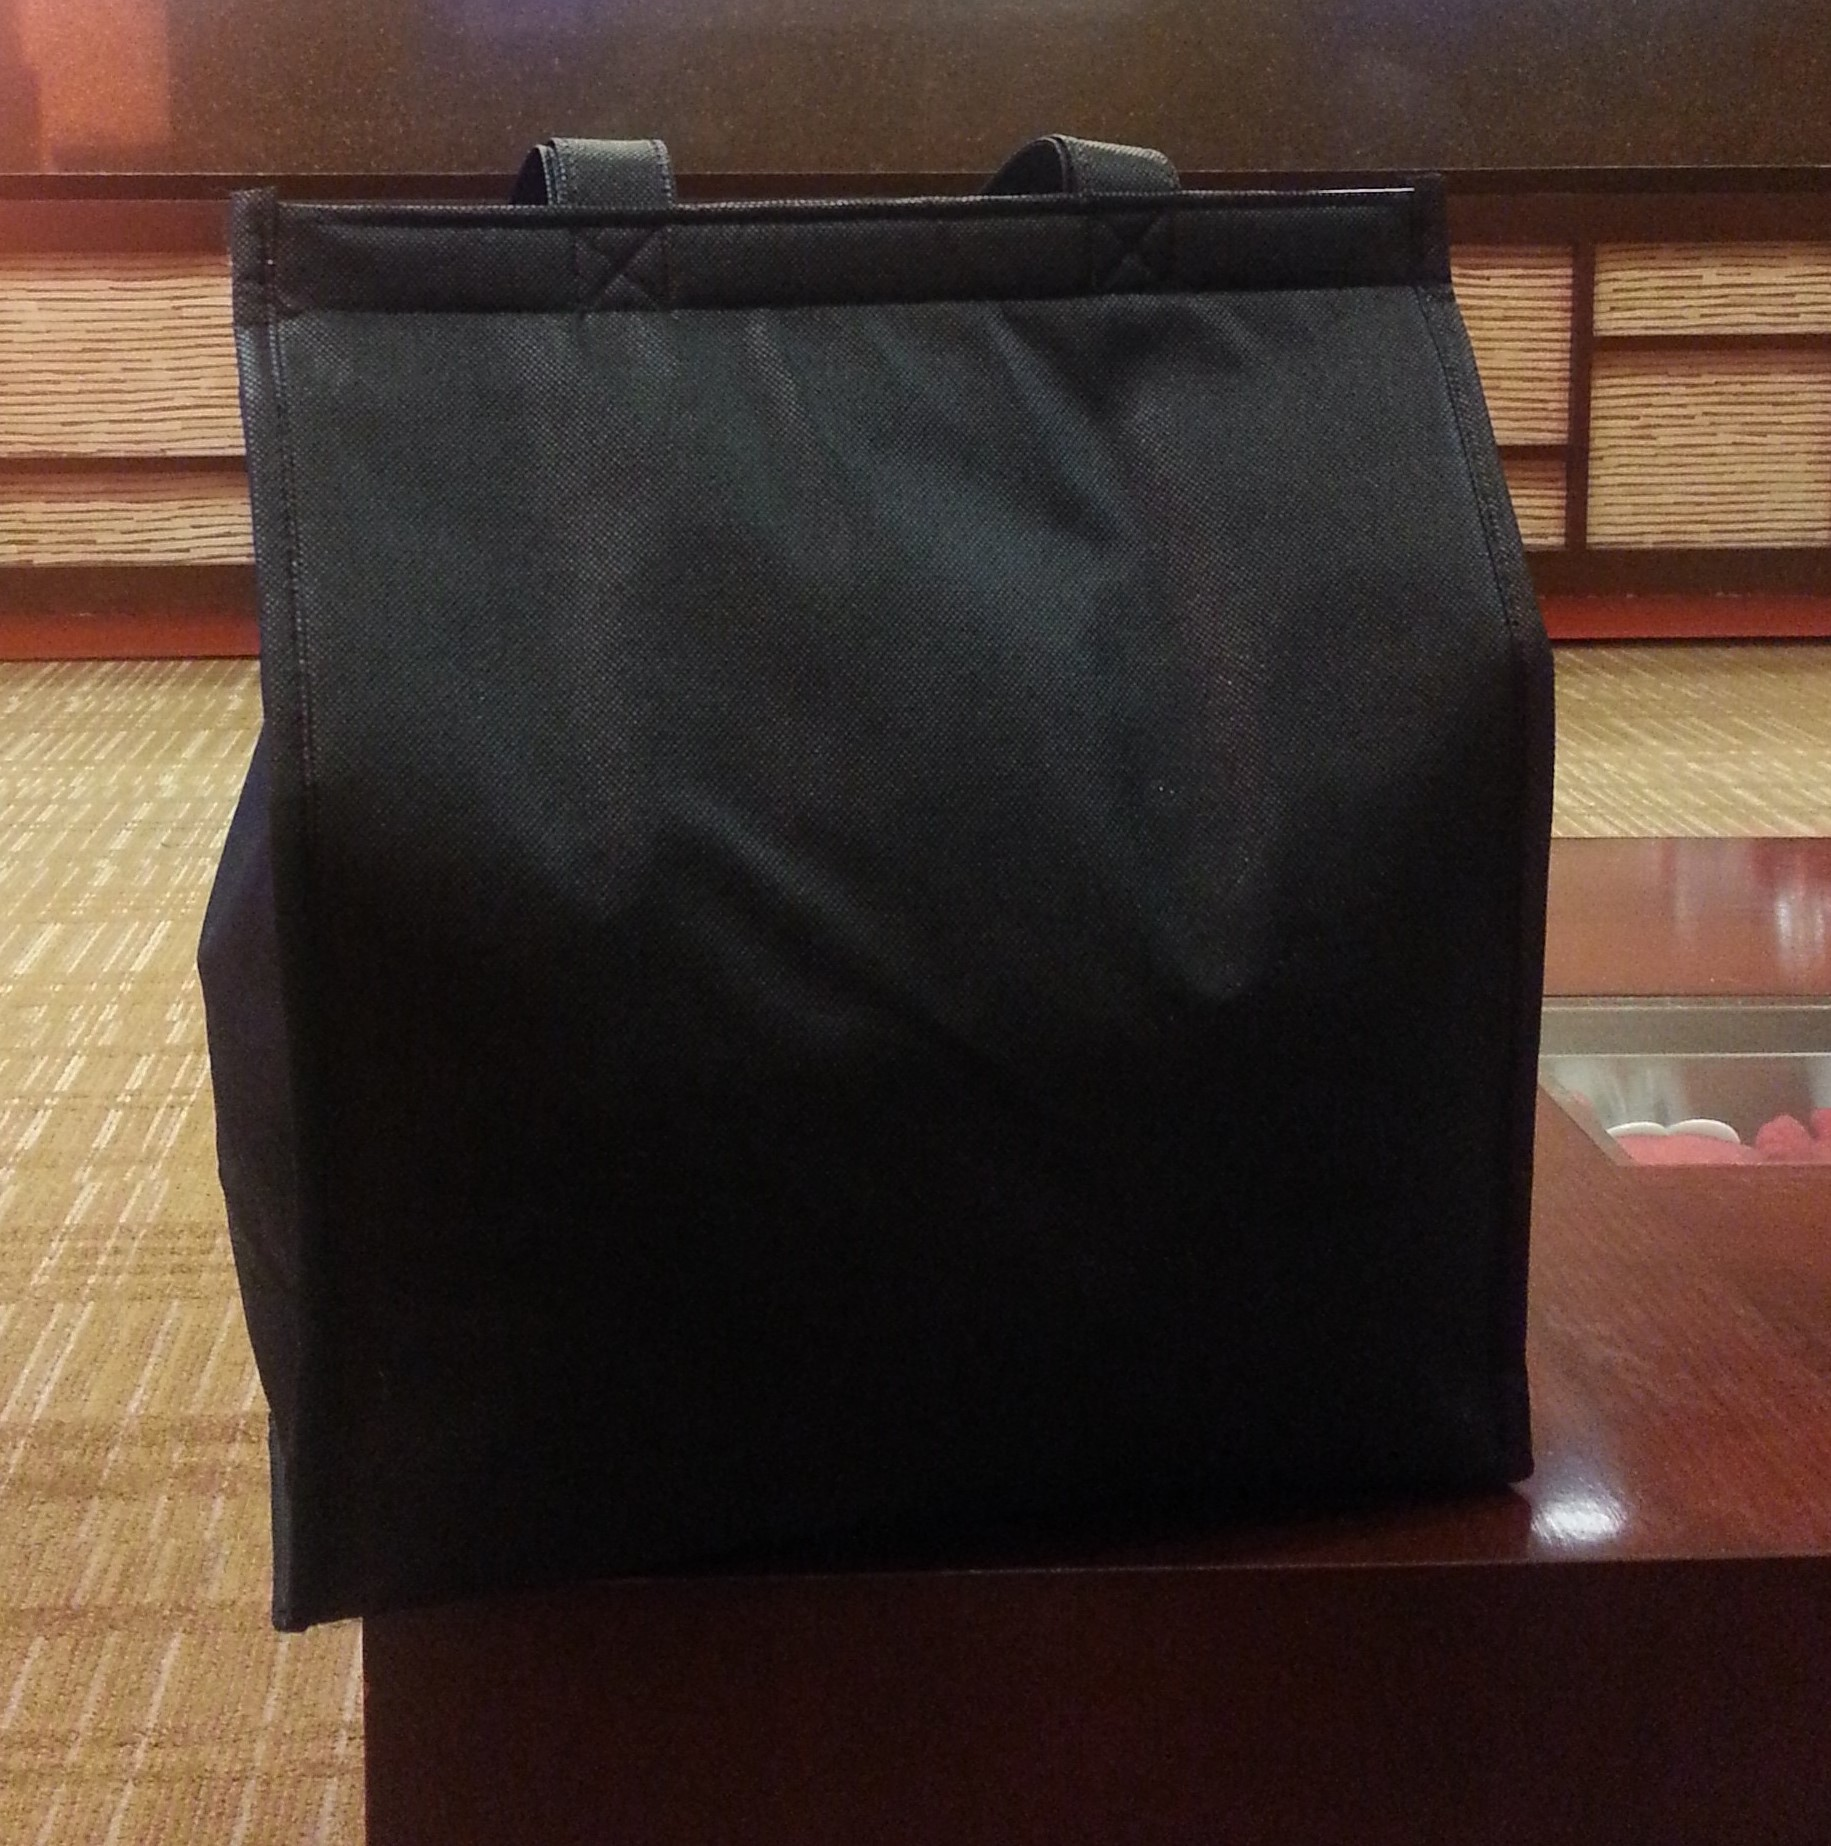 Insulated Bag with Dry Ice